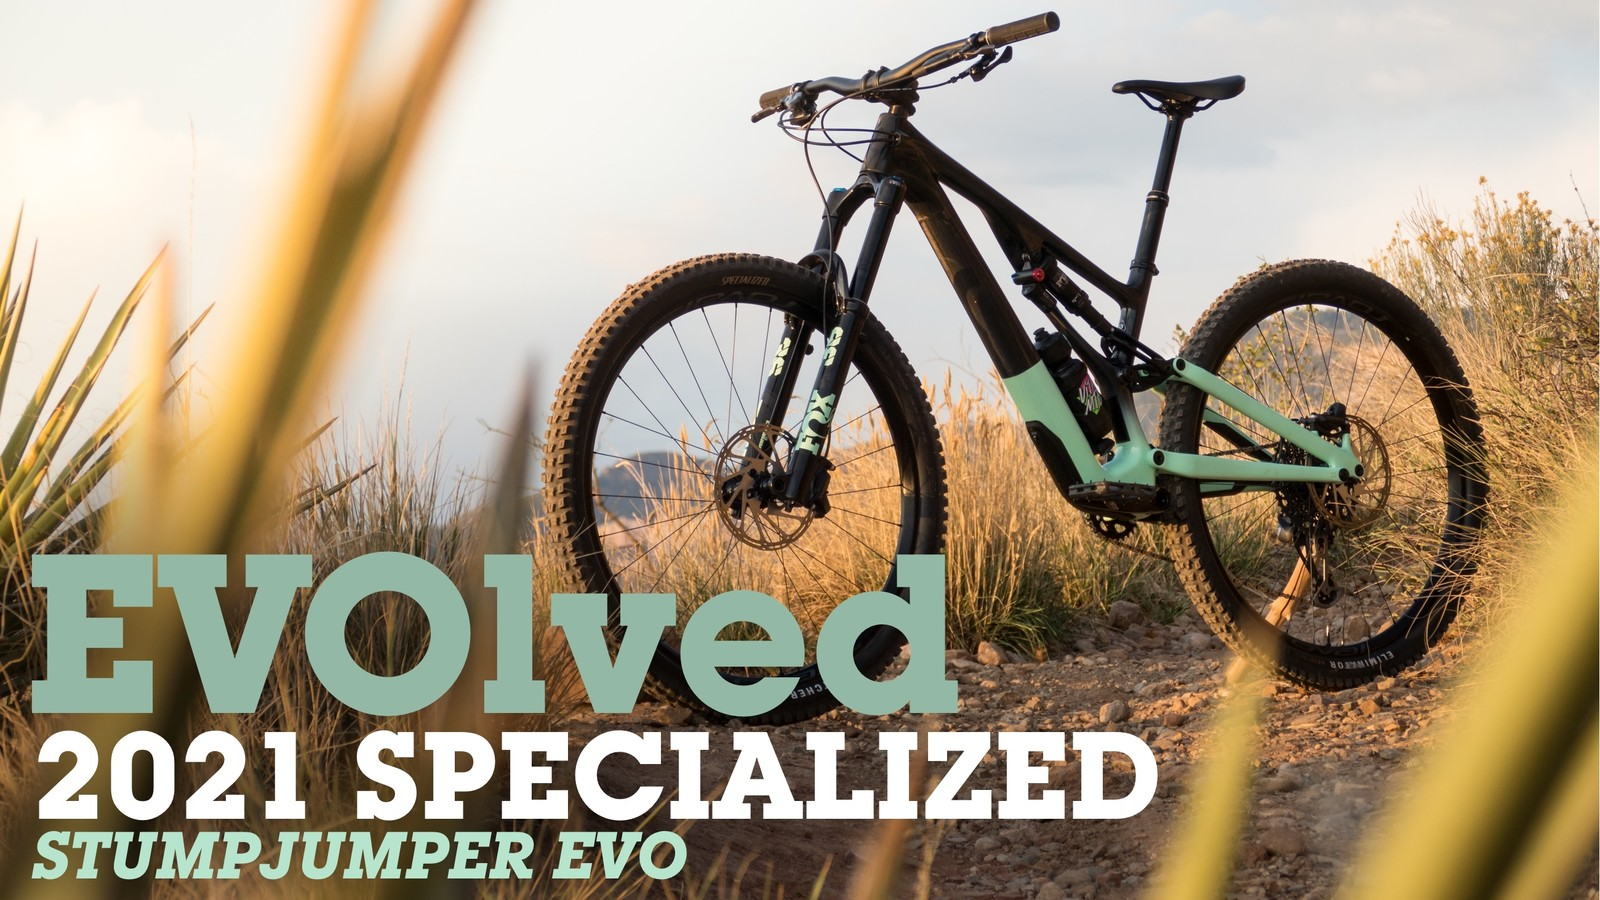 EVOLVED: The All-New 2021 Specialized Stumpjumper EVO